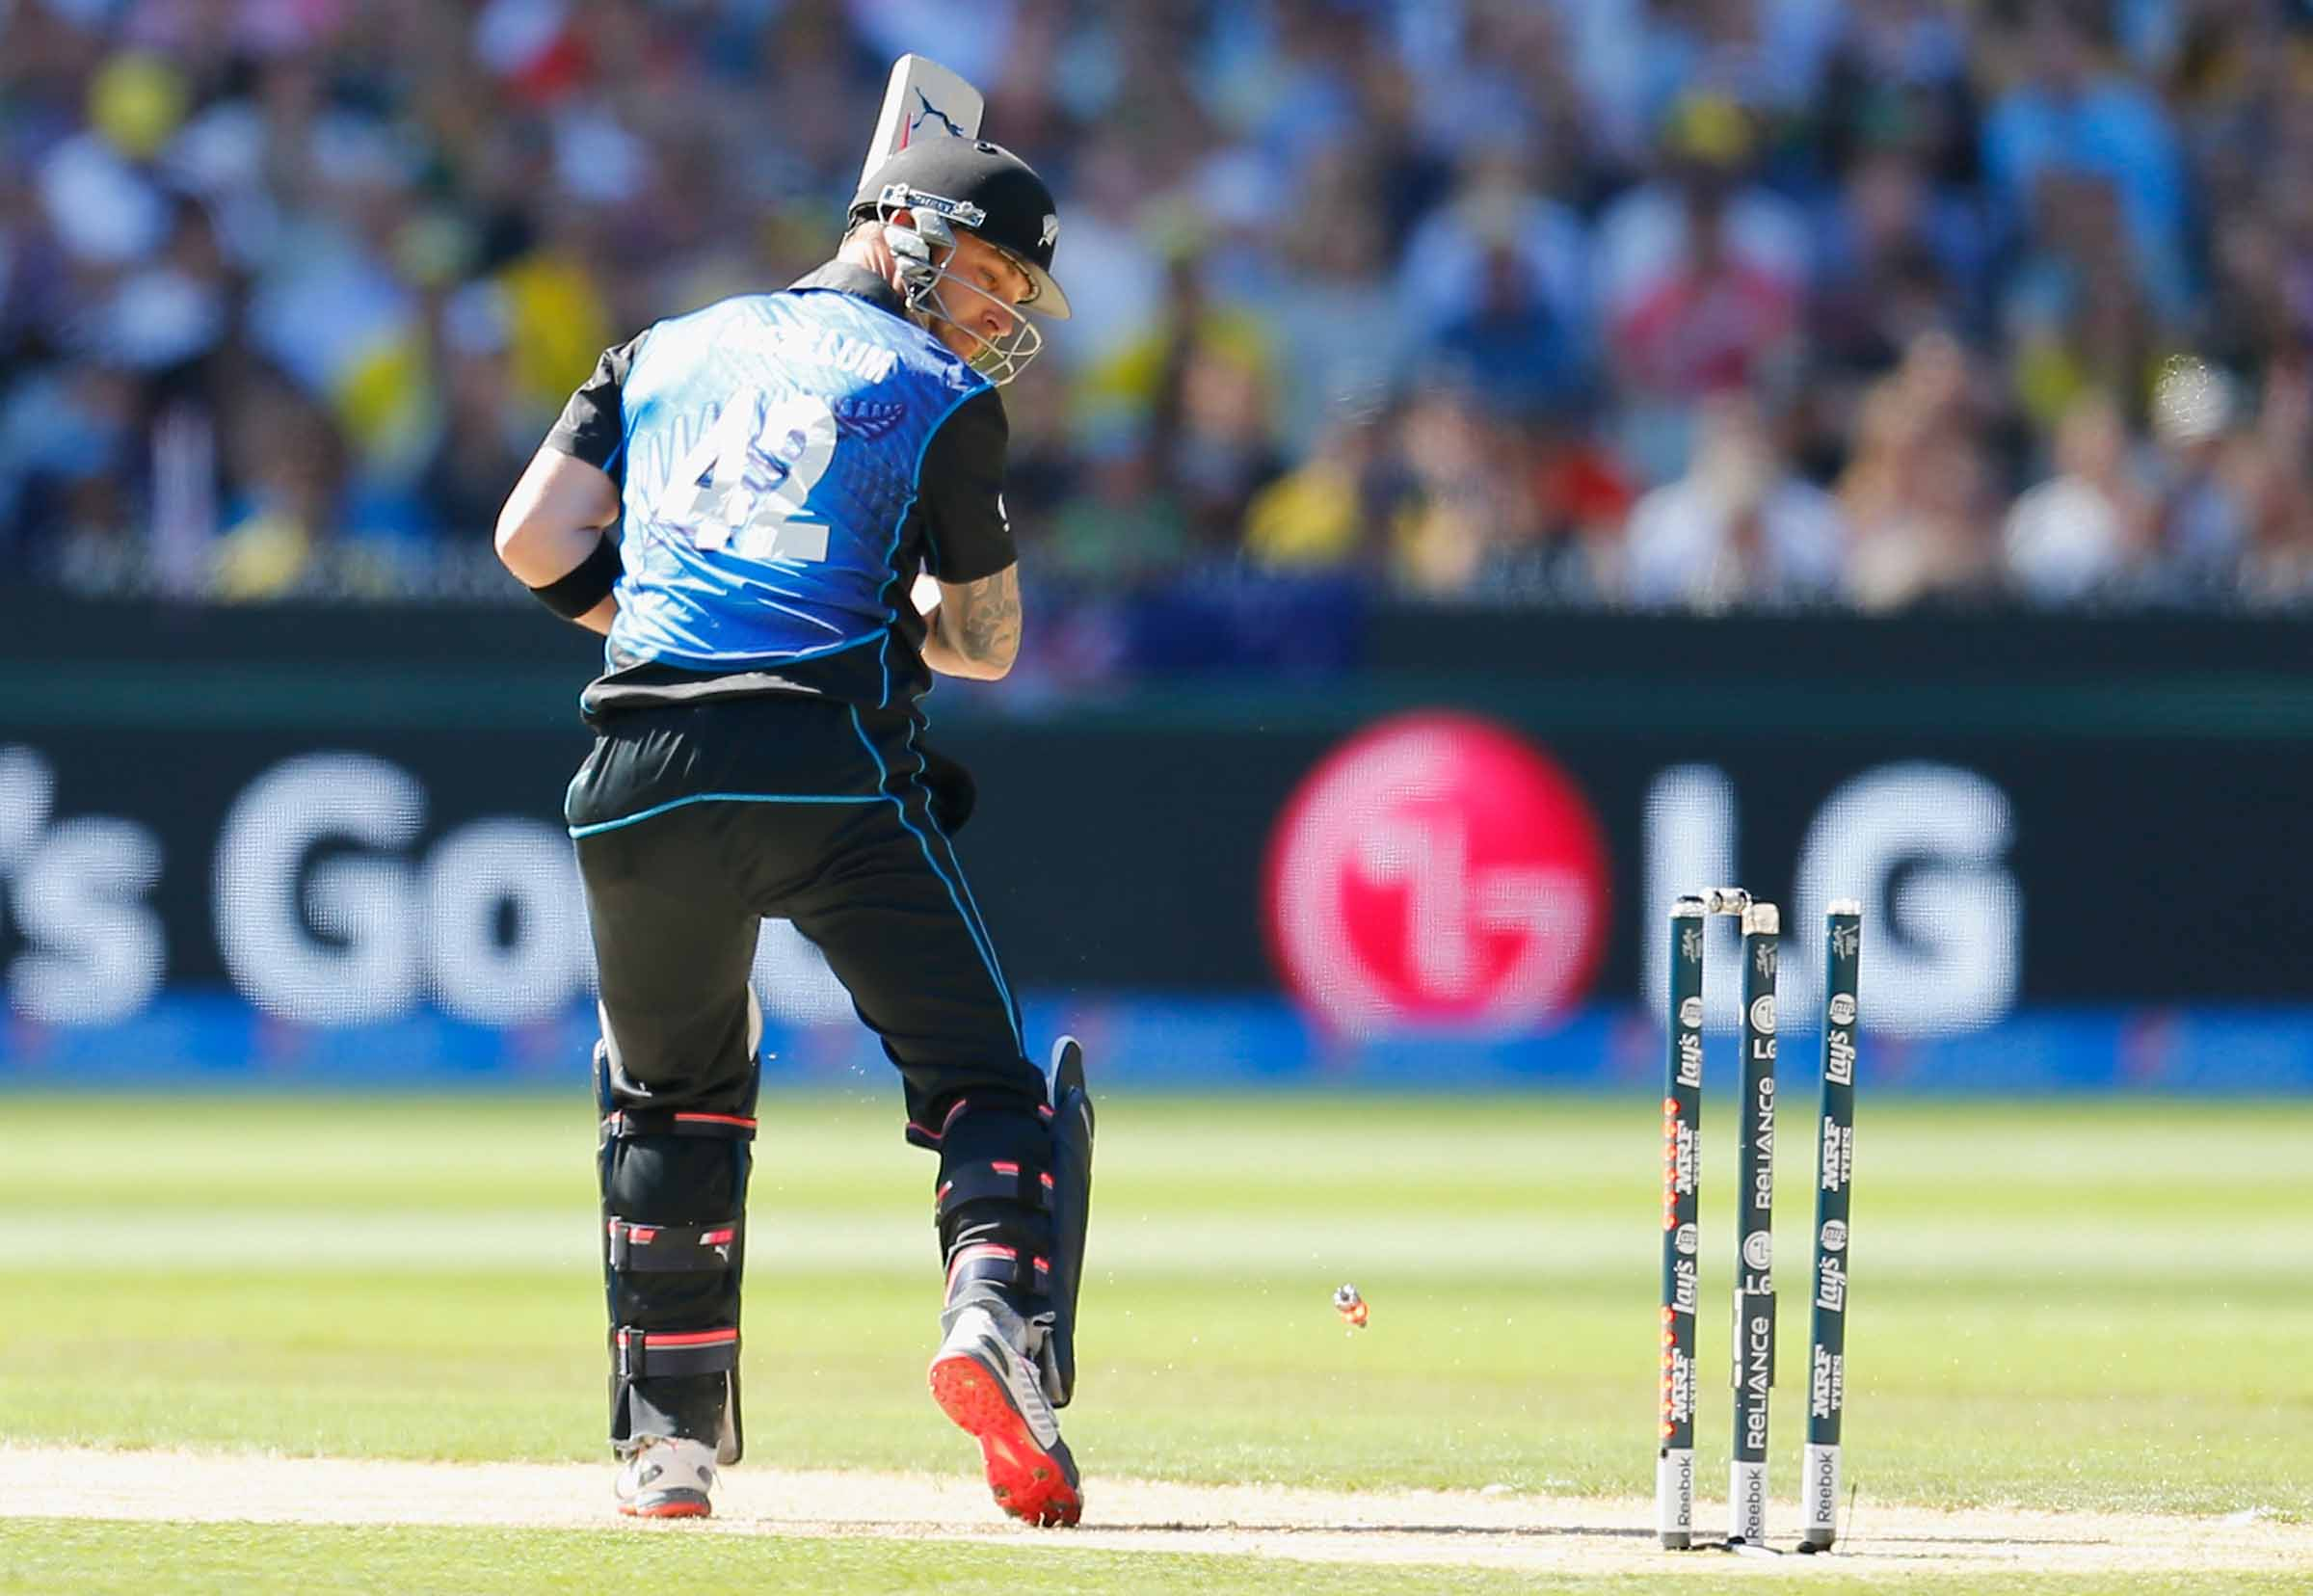 McCullum discovers the bad news // Getty